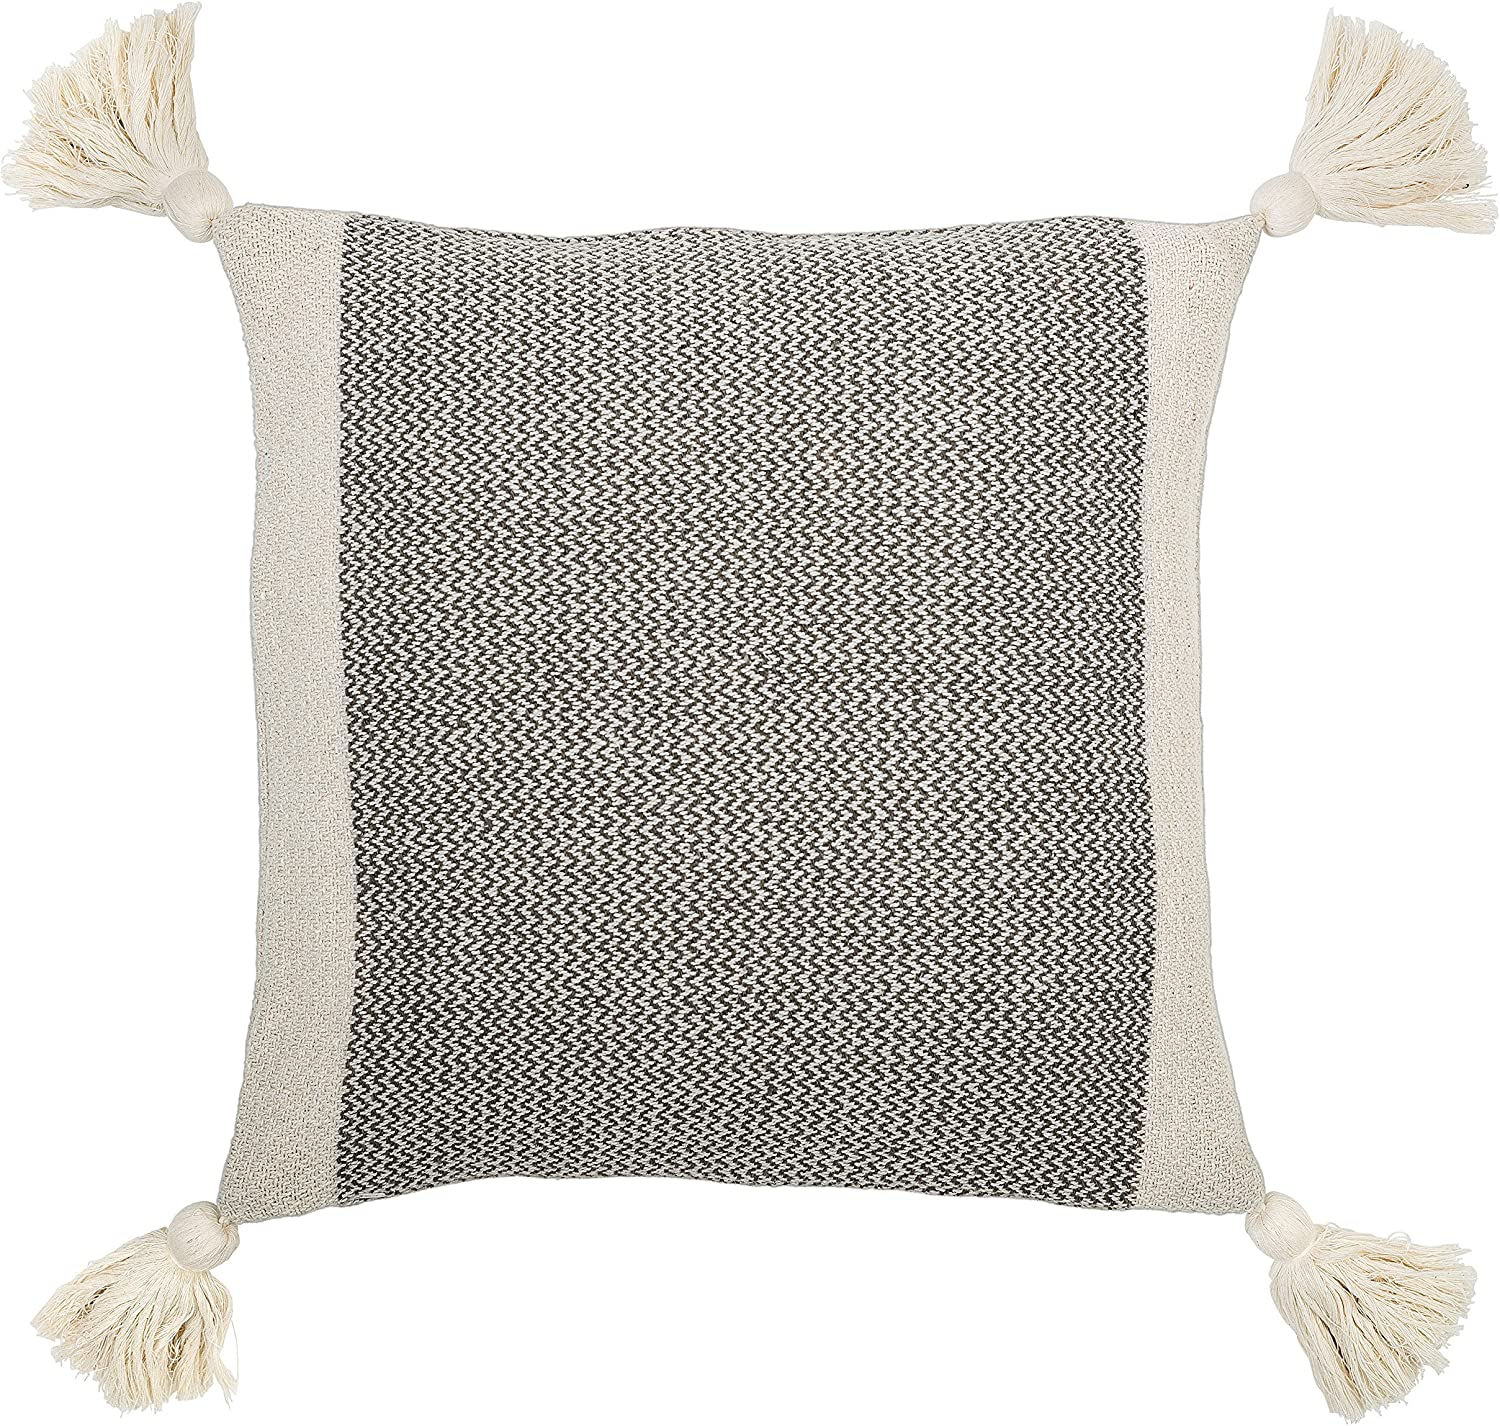 Amazon Com Bloomingville A40110195u1 Grey Cream Corner Grey Square Cotton Blend Pillow With Tassels 18 Home Kitchen